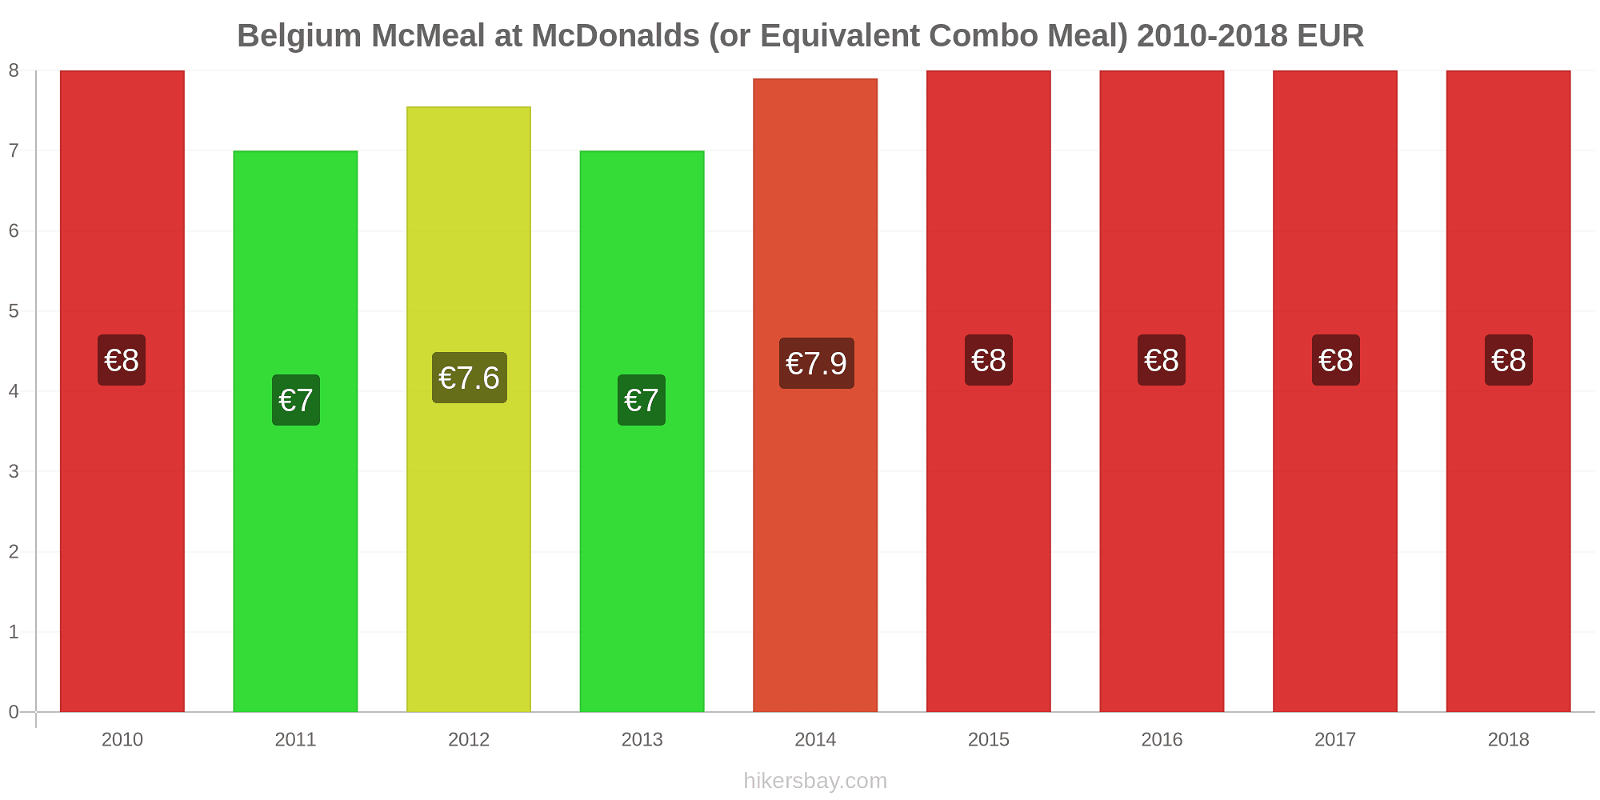 Belgium price changes McMeal at McDonalds (or Equivalent Combo Meal) hikersbay.com